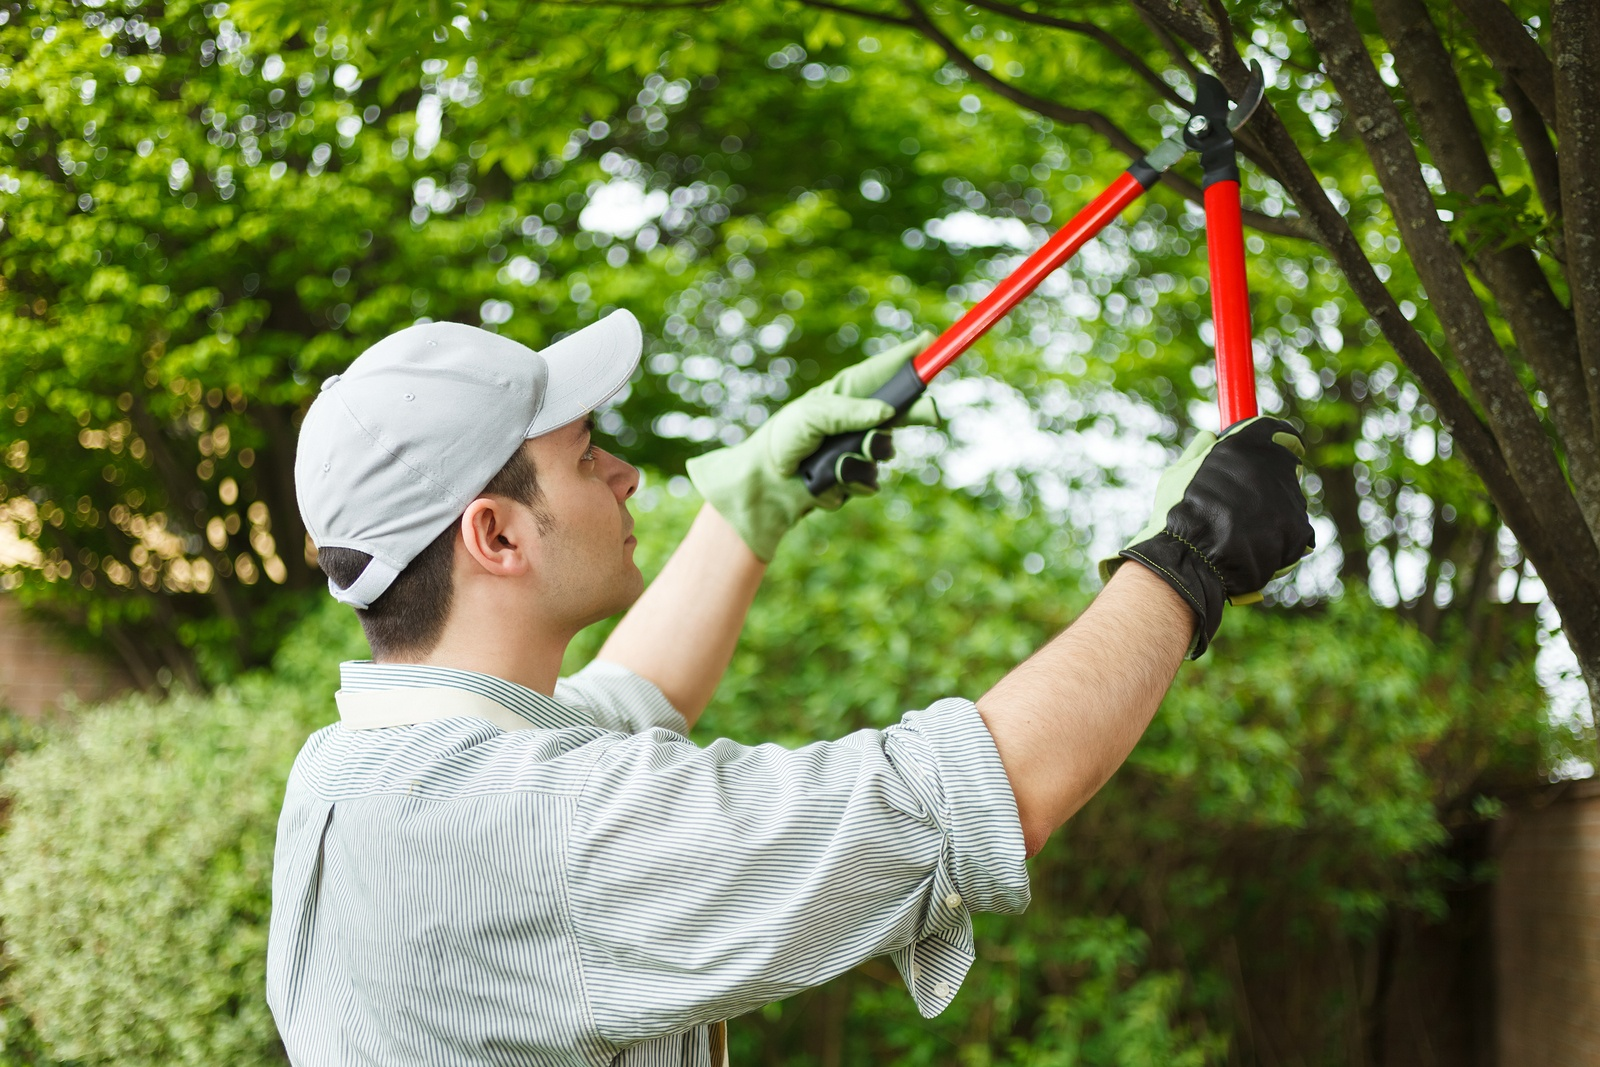 Trimming Branches